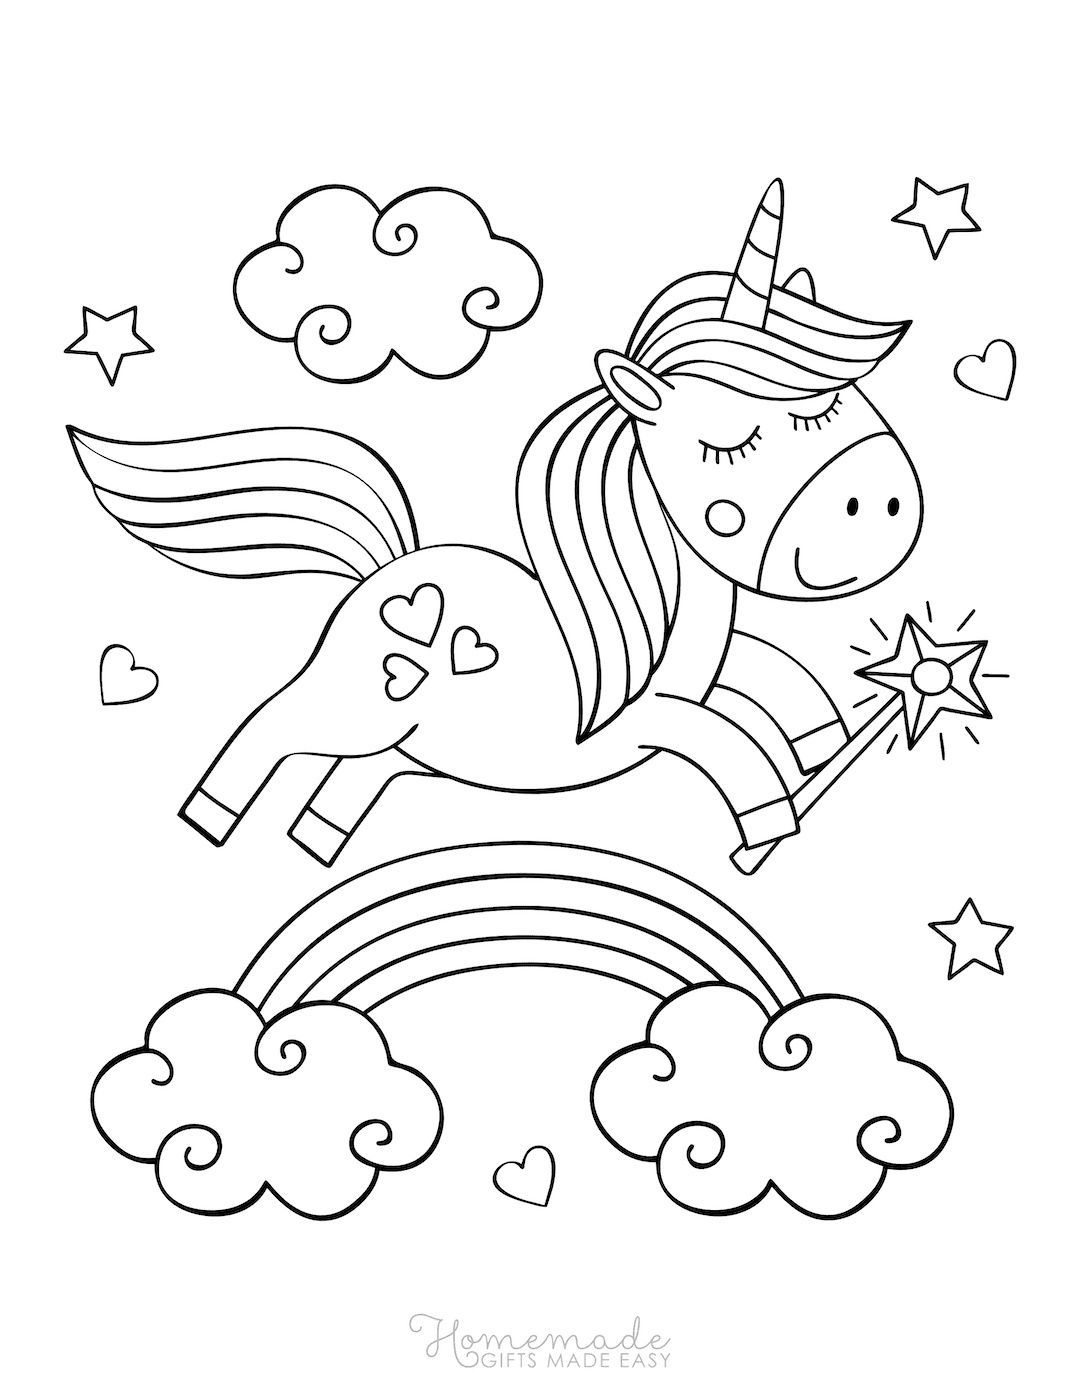 75 Magical Unicorn Coloring Pages For Kids Adults Free Printables Unicorn Coloring Pages Coloring Pages Valentine Coloring Pages